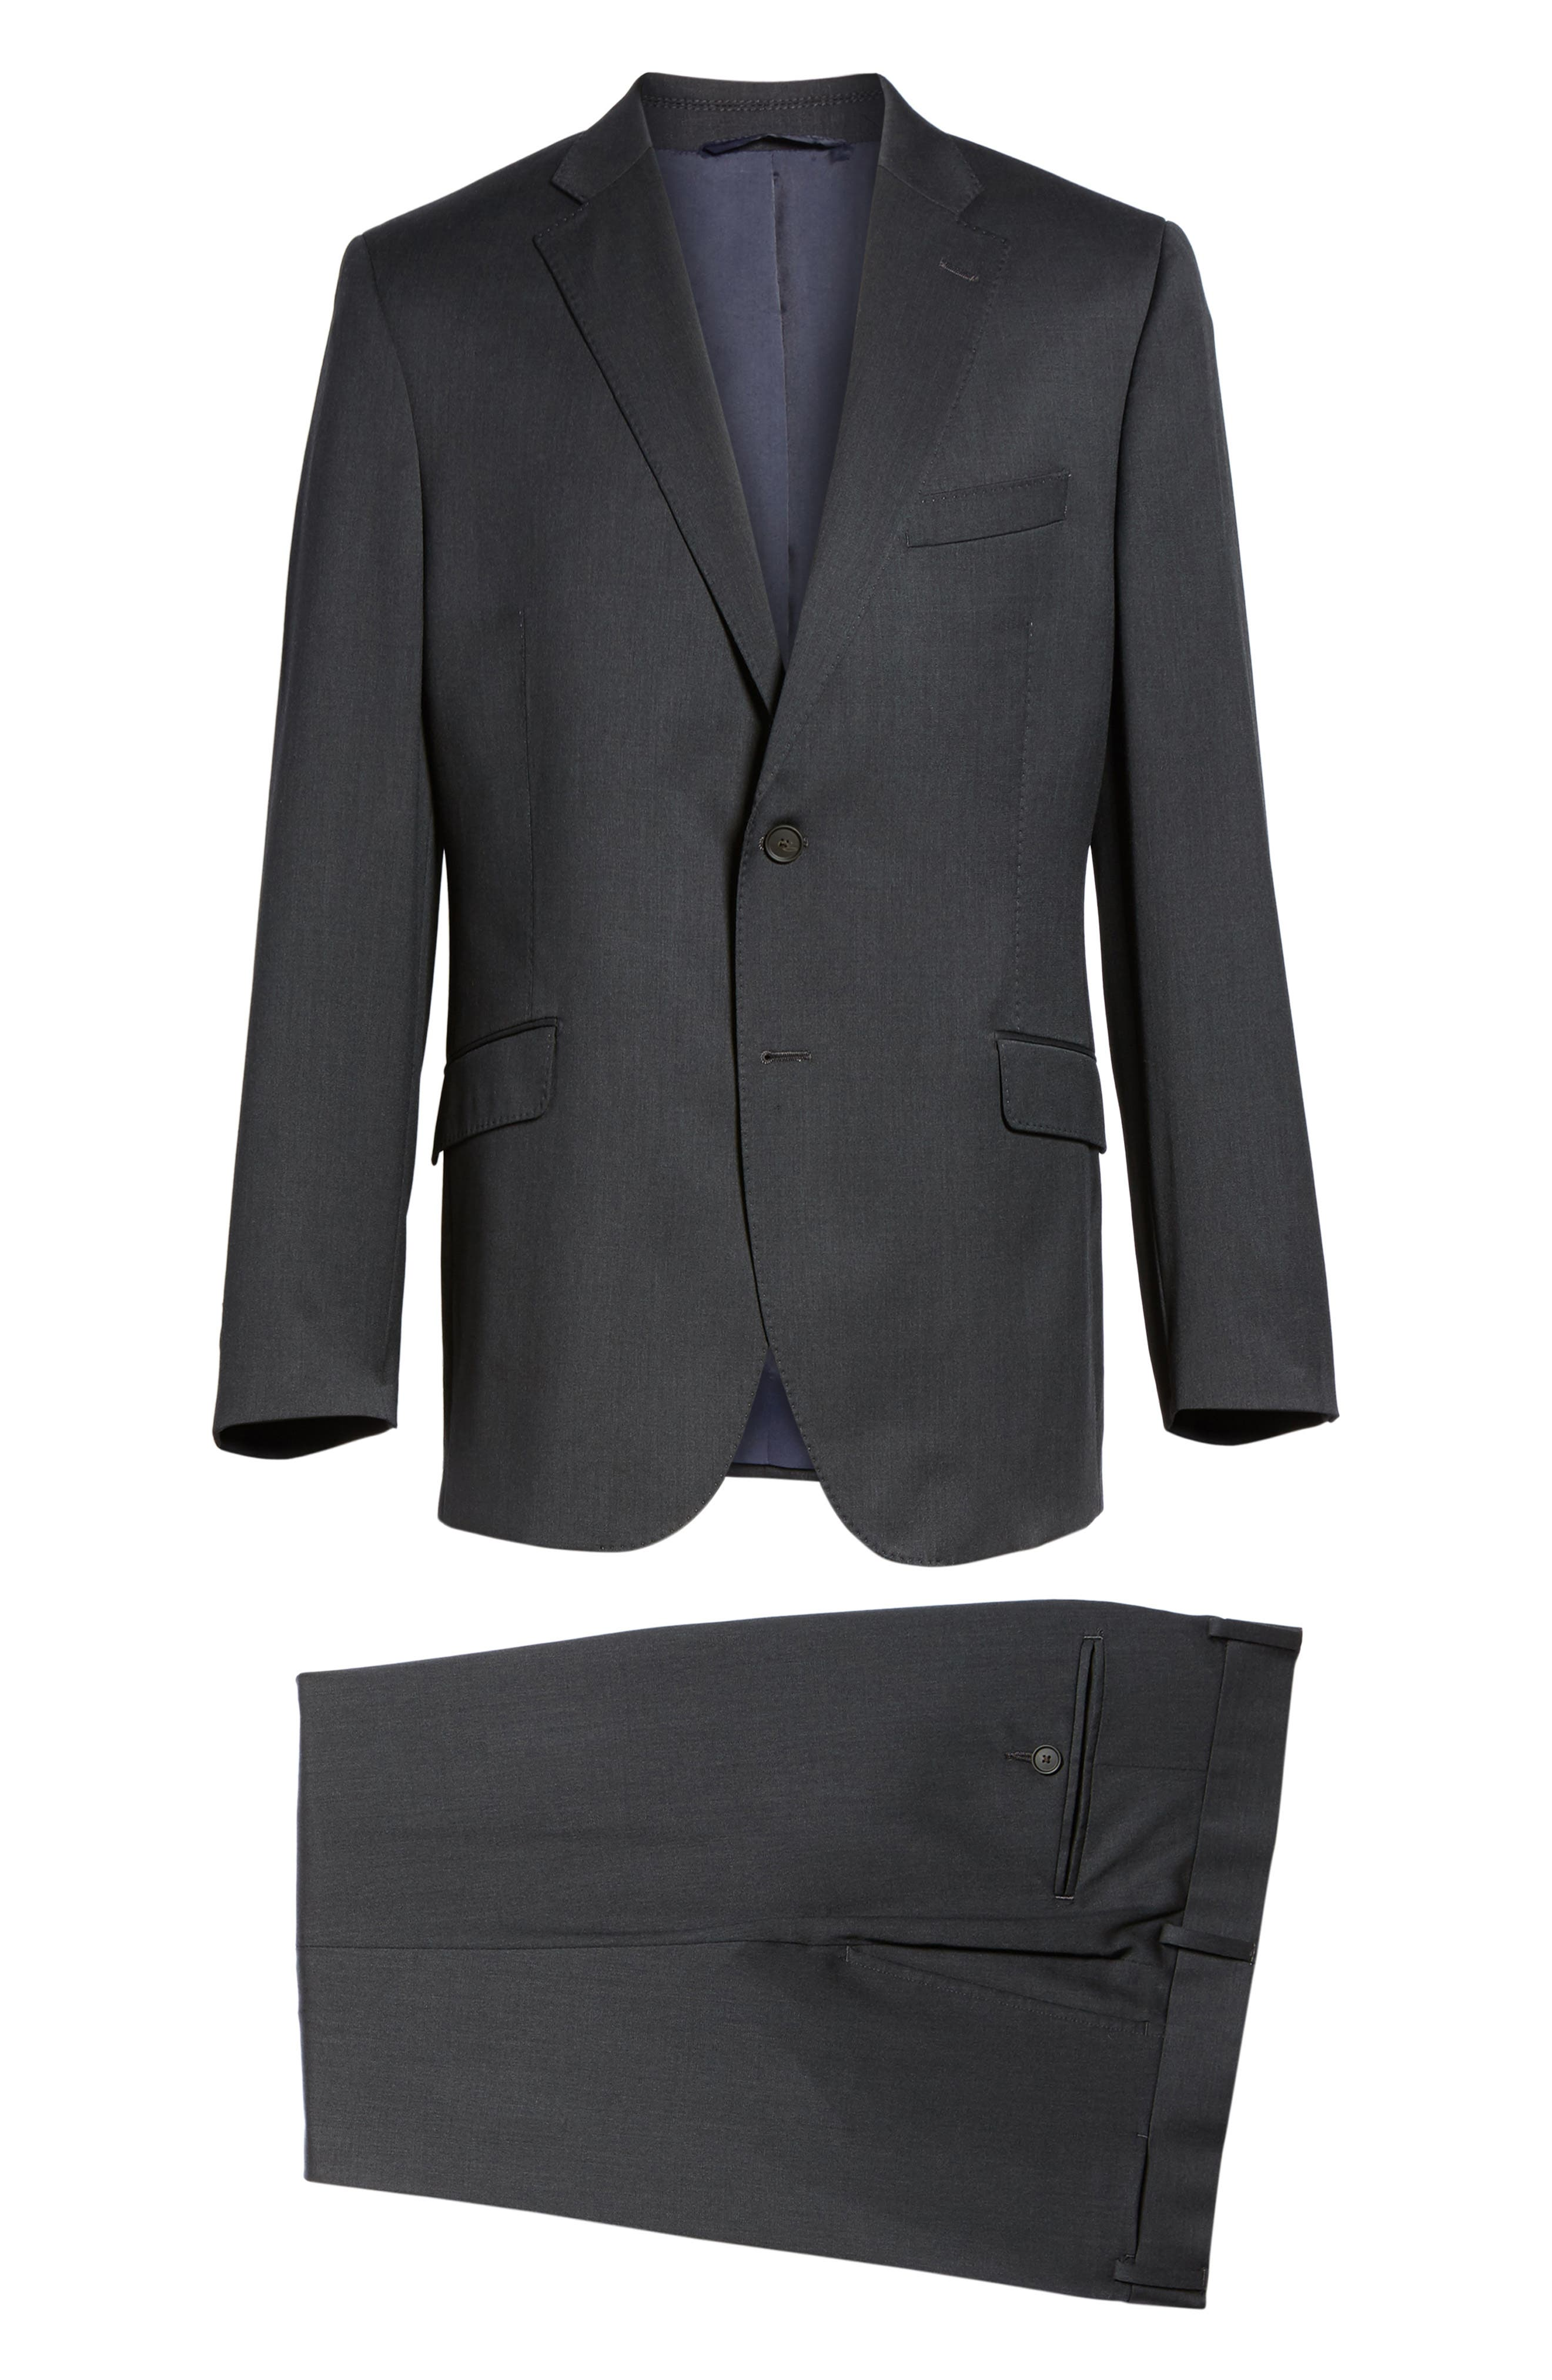 Keidis Aim Classic Fit Stretch Wool Suit,                             Alternate thumbnail 8, color,                             Charcoal